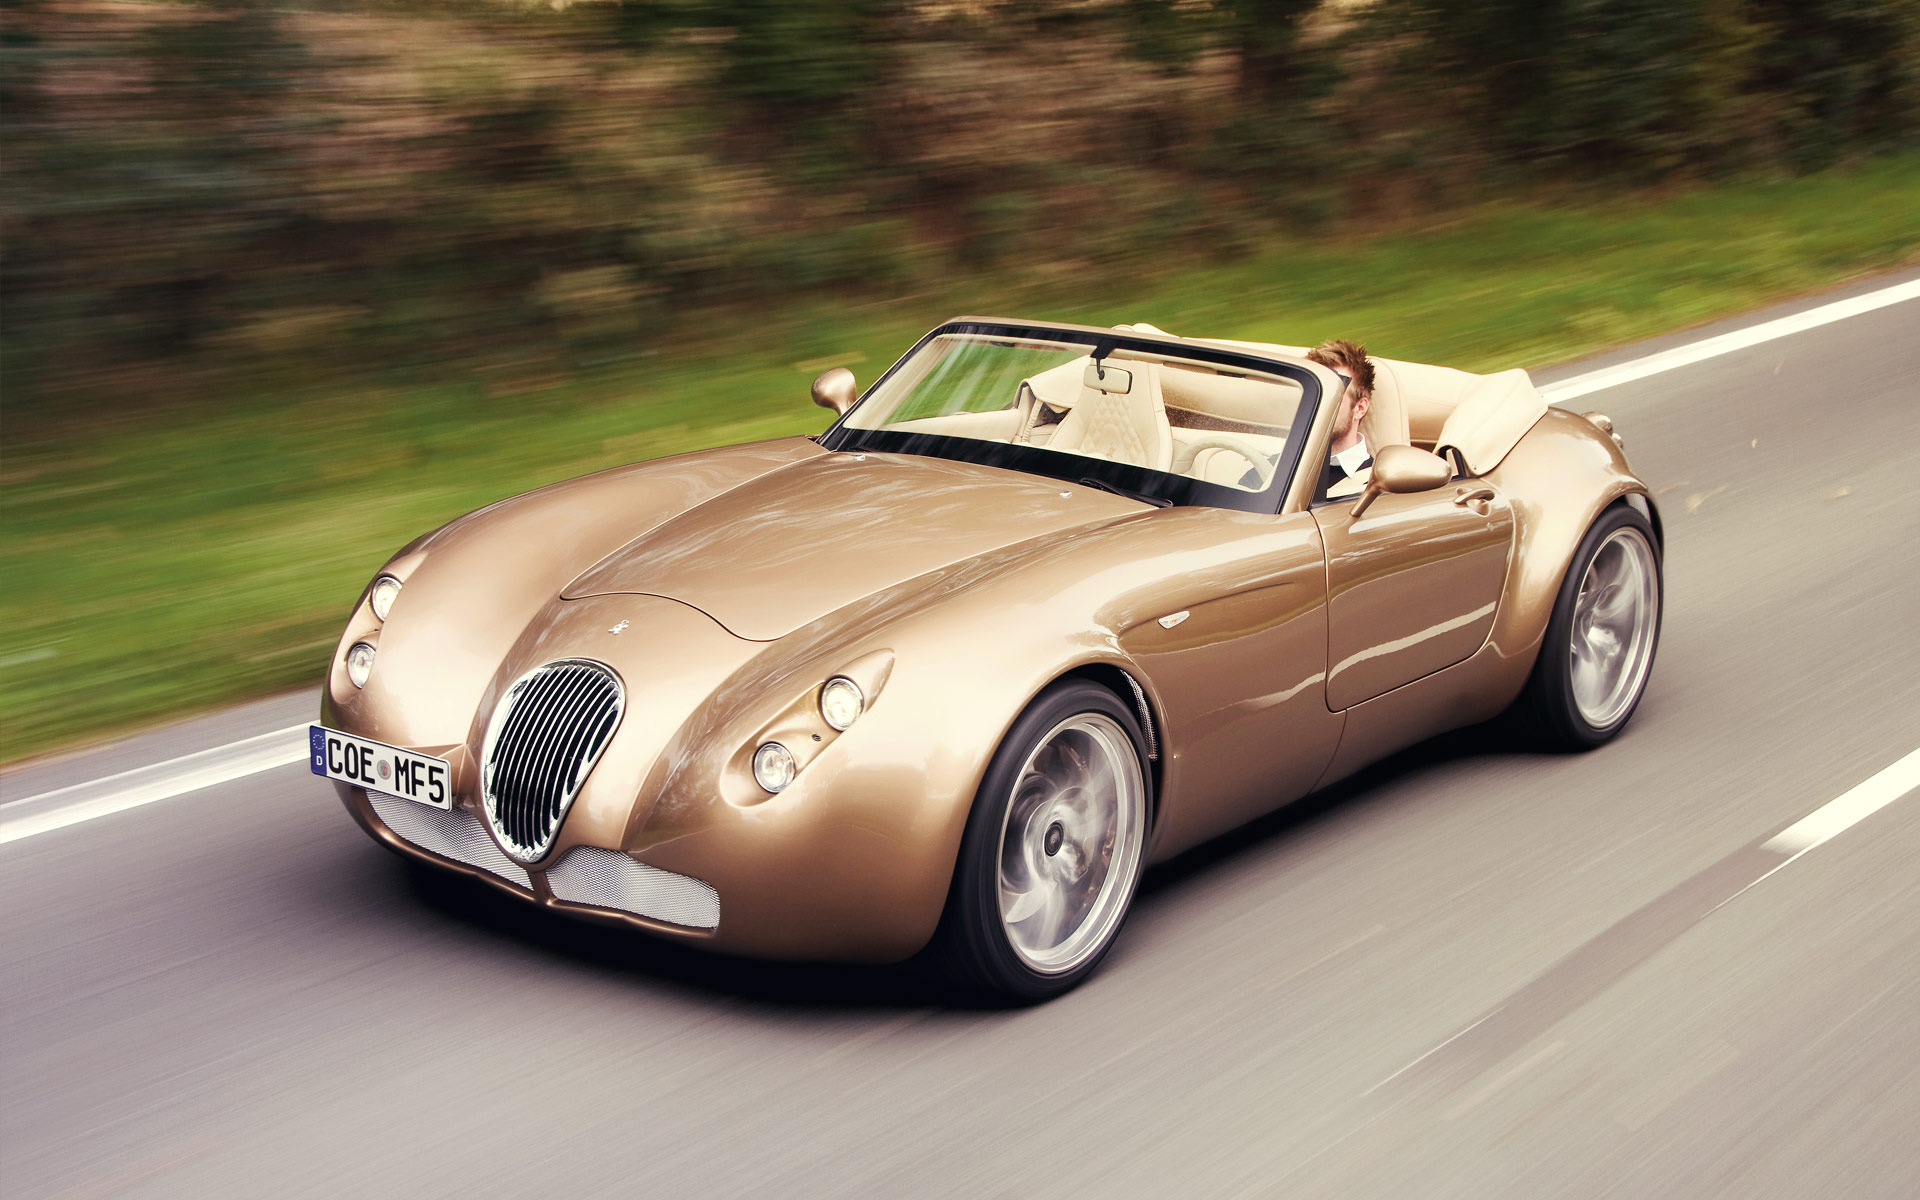 wiesmann mf5 roadster specs 2012 2013 2014 2015 2016 2017 2018 autoevolution. Black Bedroom Furniture Sets. Home Design Ideas